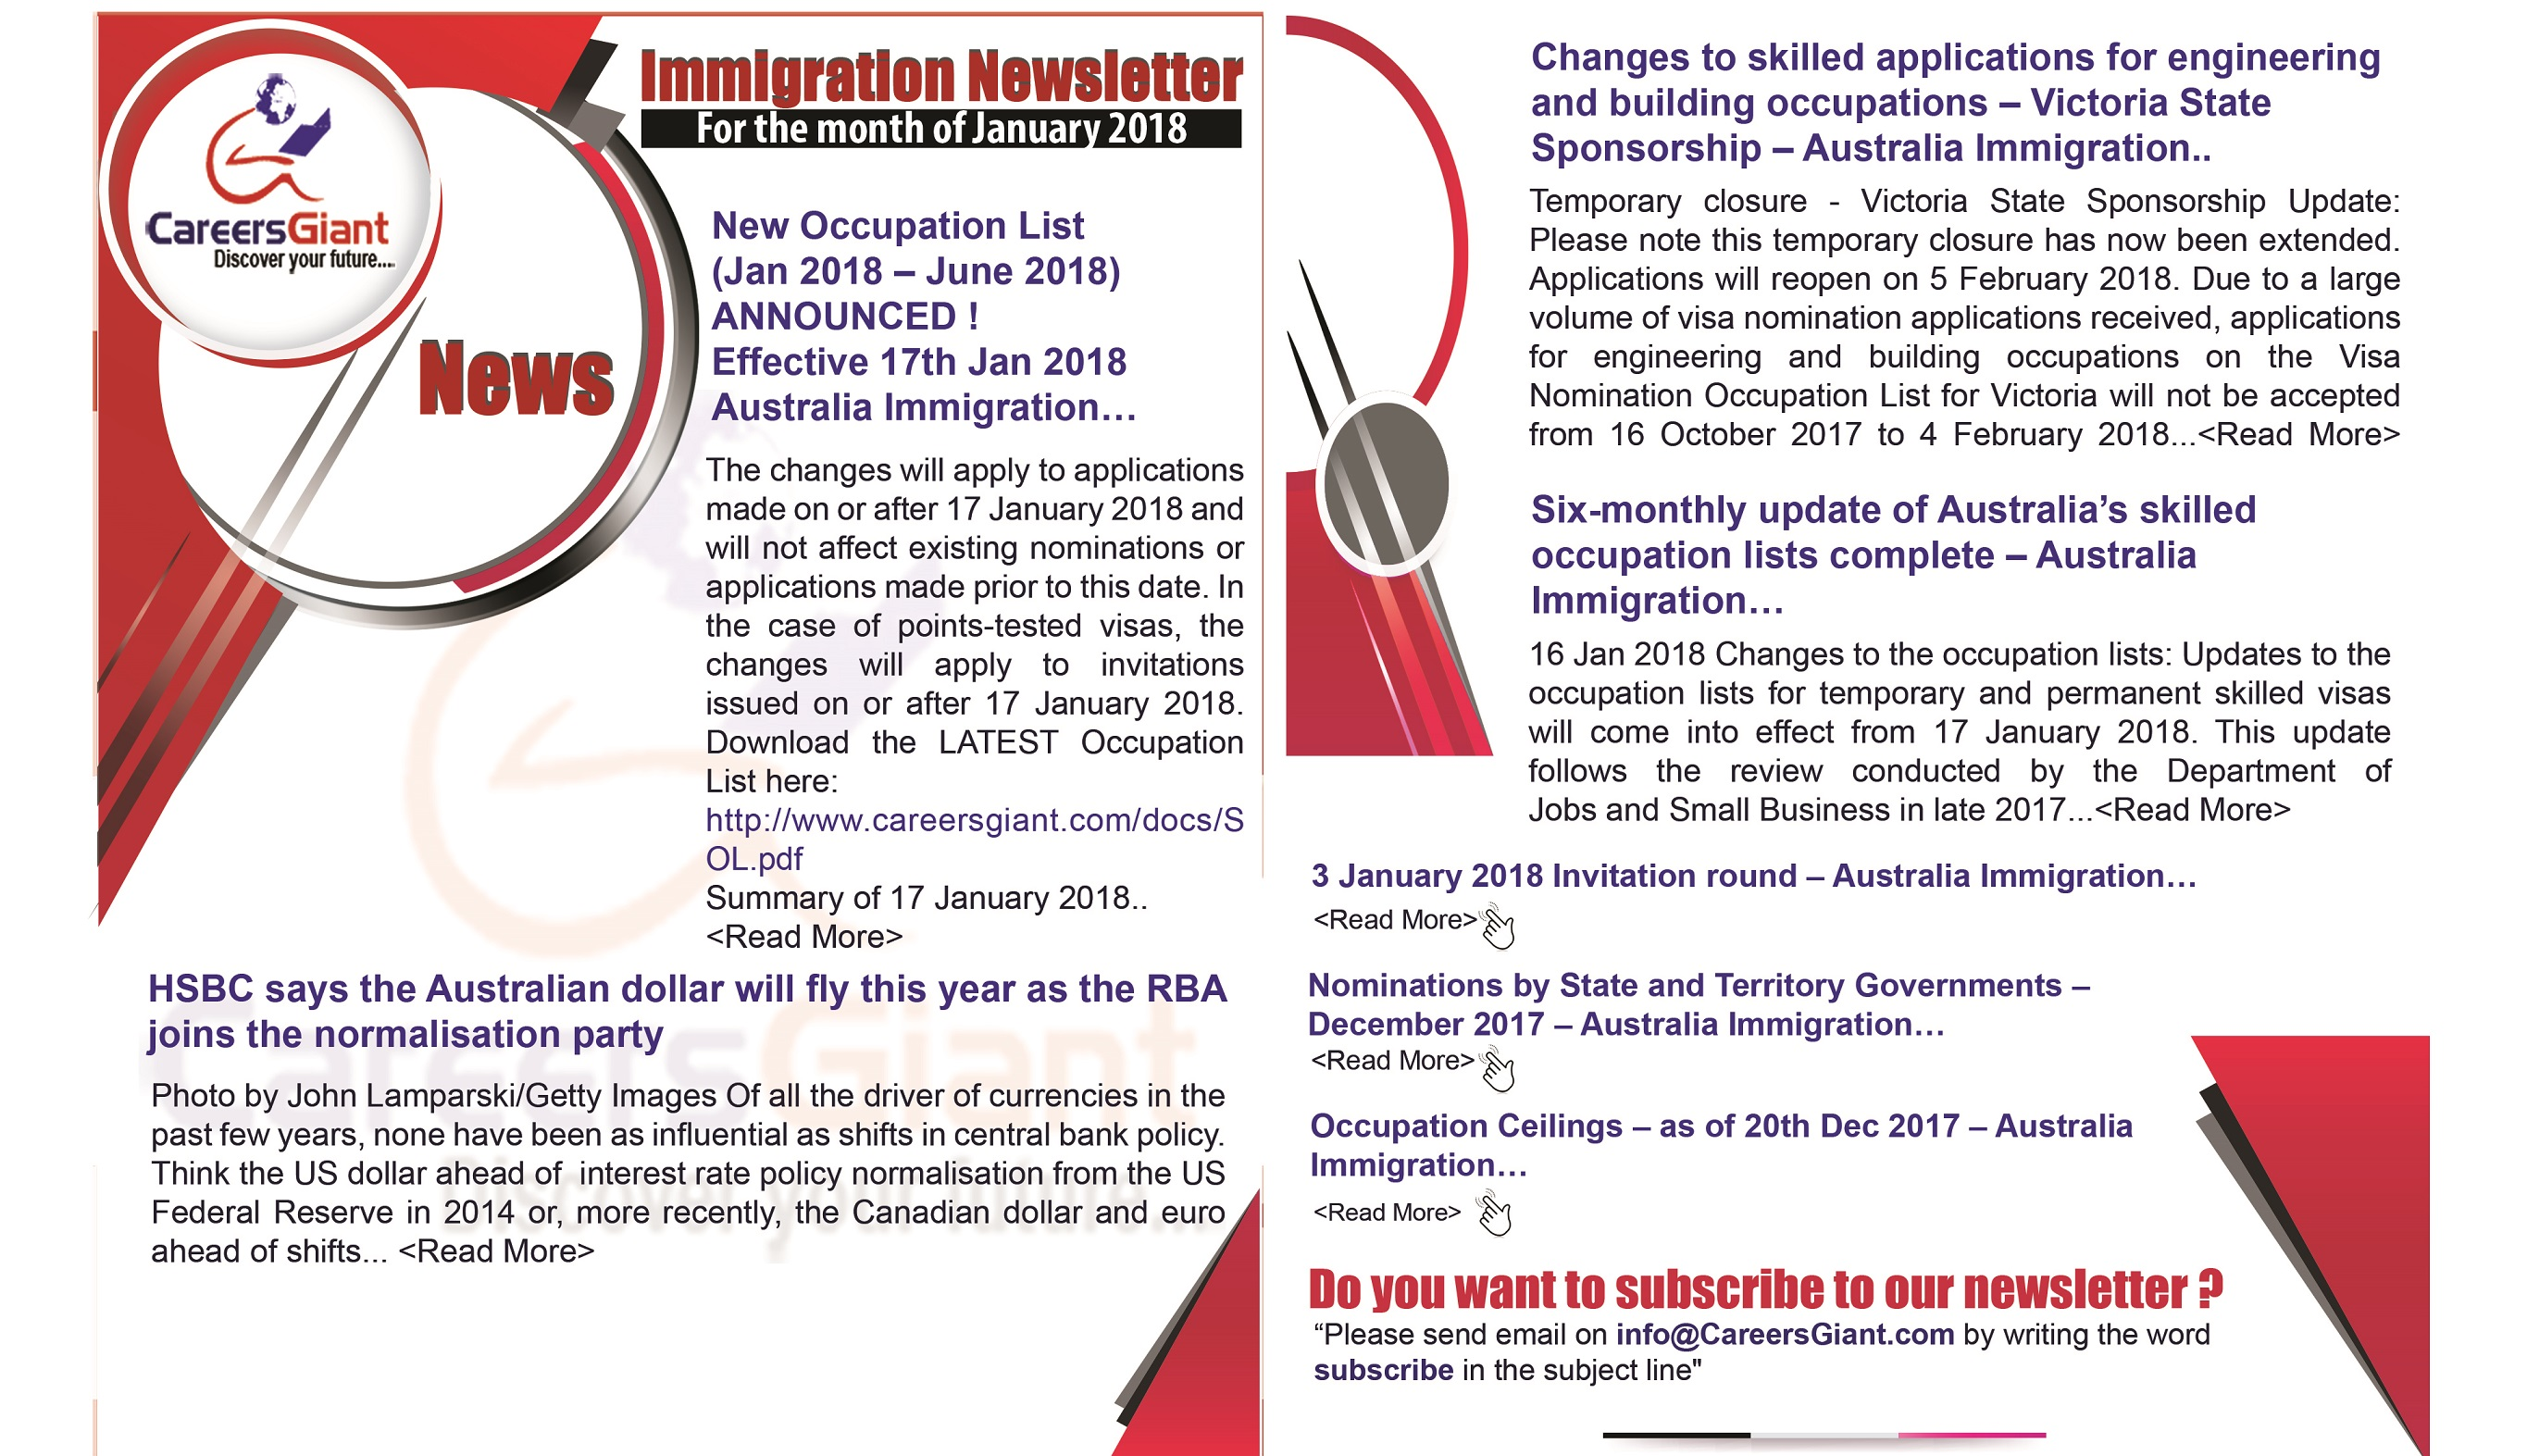 Immigration invitation round 2018 invitationswedd immigration newsletter by careersgiant jan 2018 express entry round of invitations stopboris Gallery